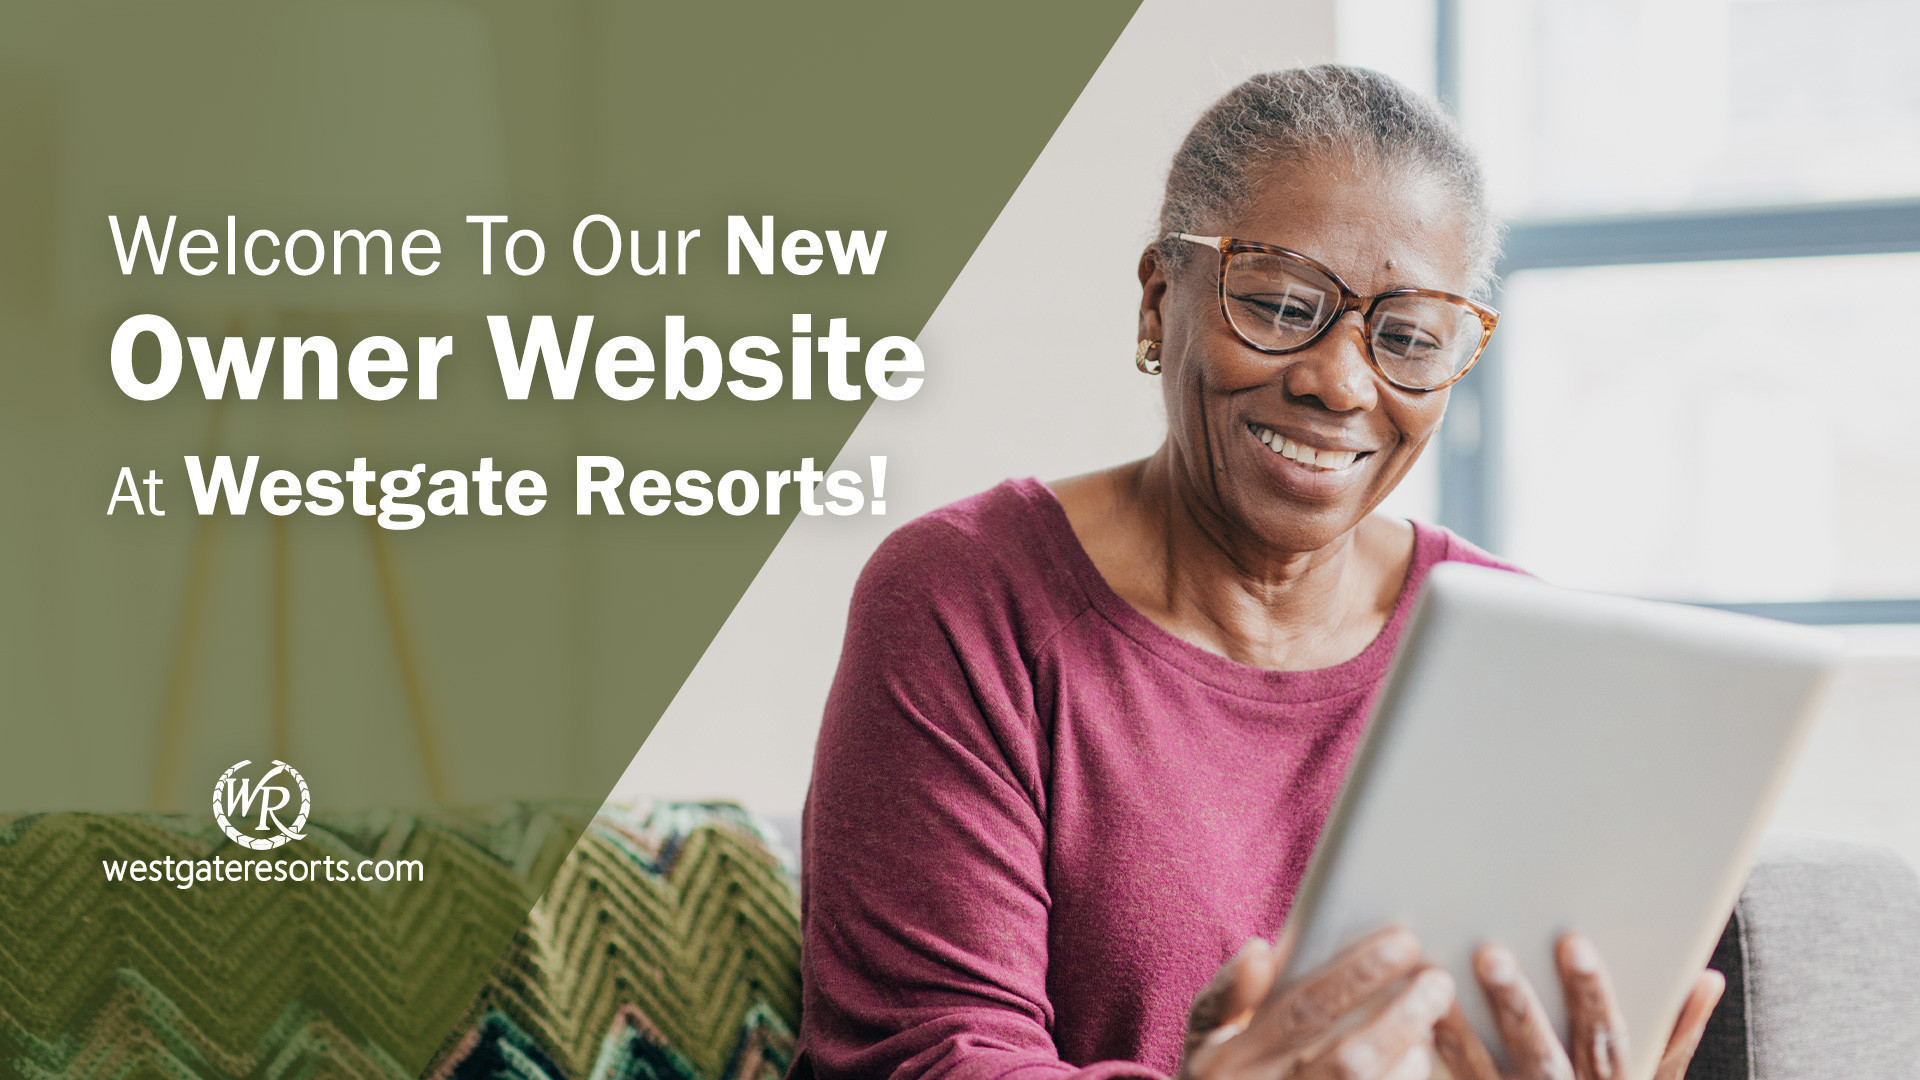 Welcome To Our New Owner Website At Westgate Resorts!